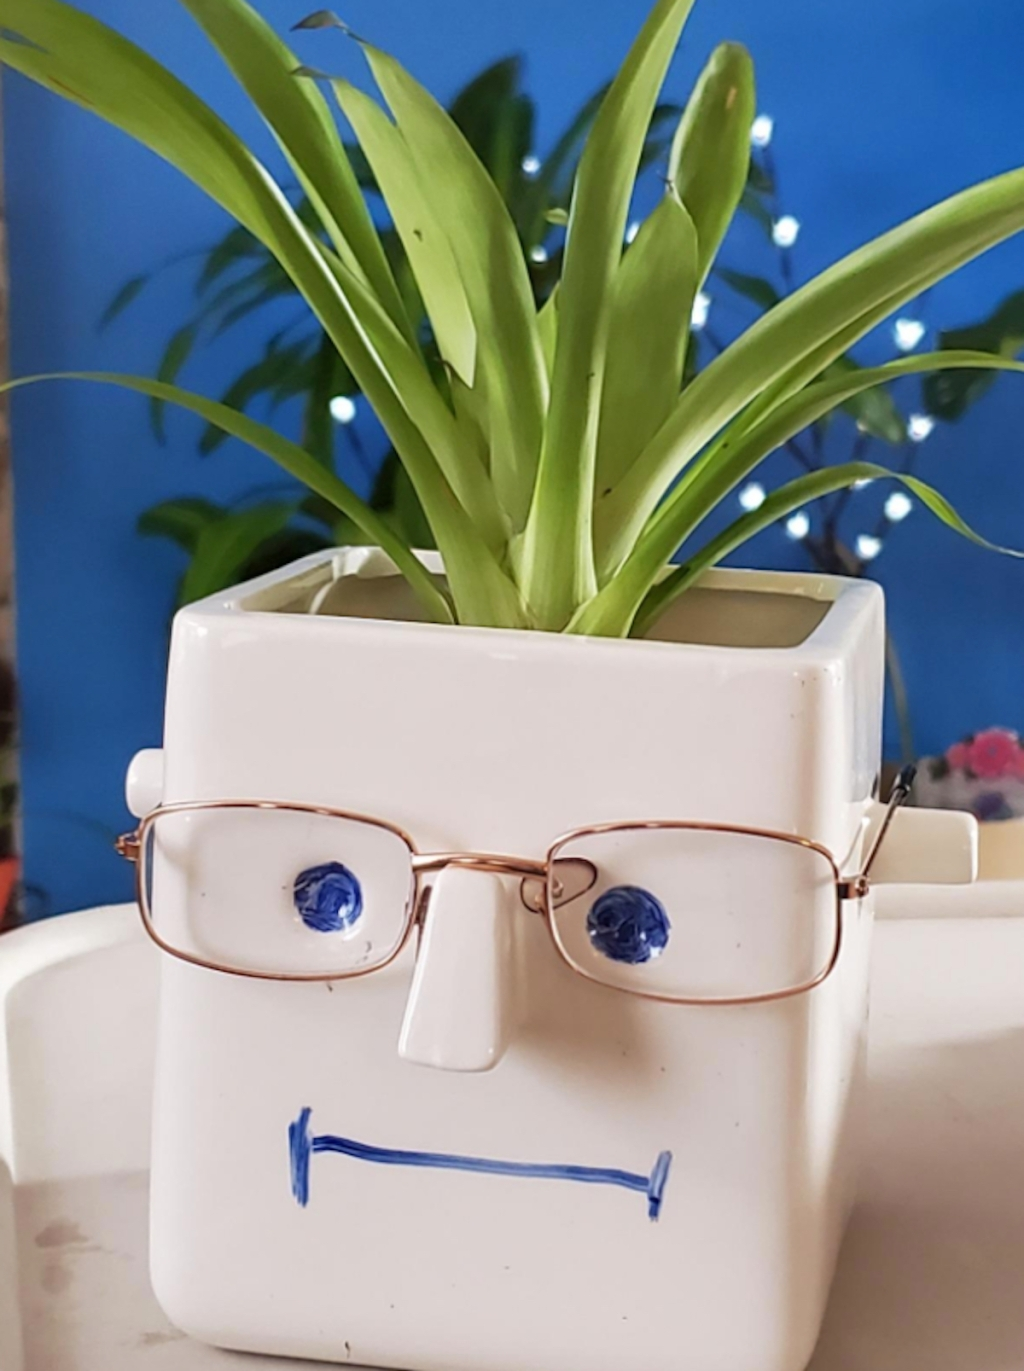 white planer box with face and glasses on it